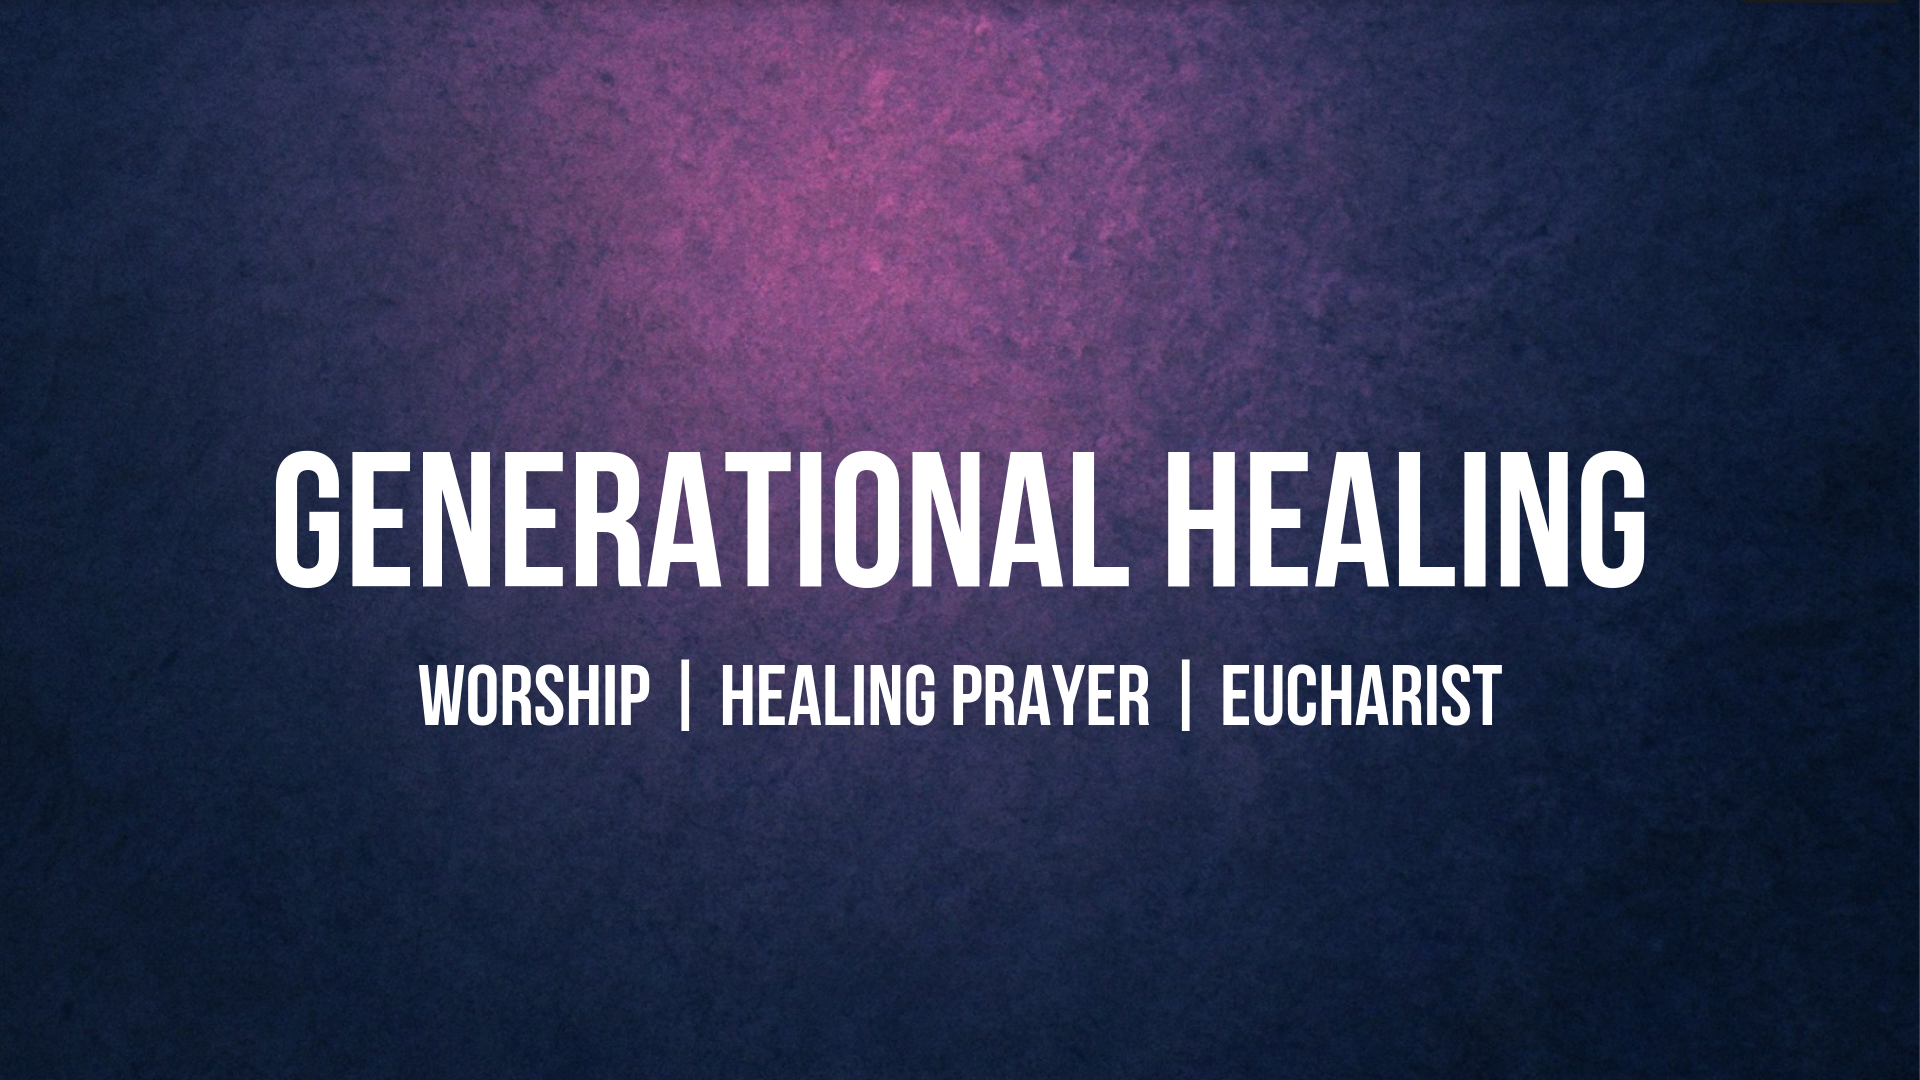 Generational Healing Service with Eucharist — Imago Dei